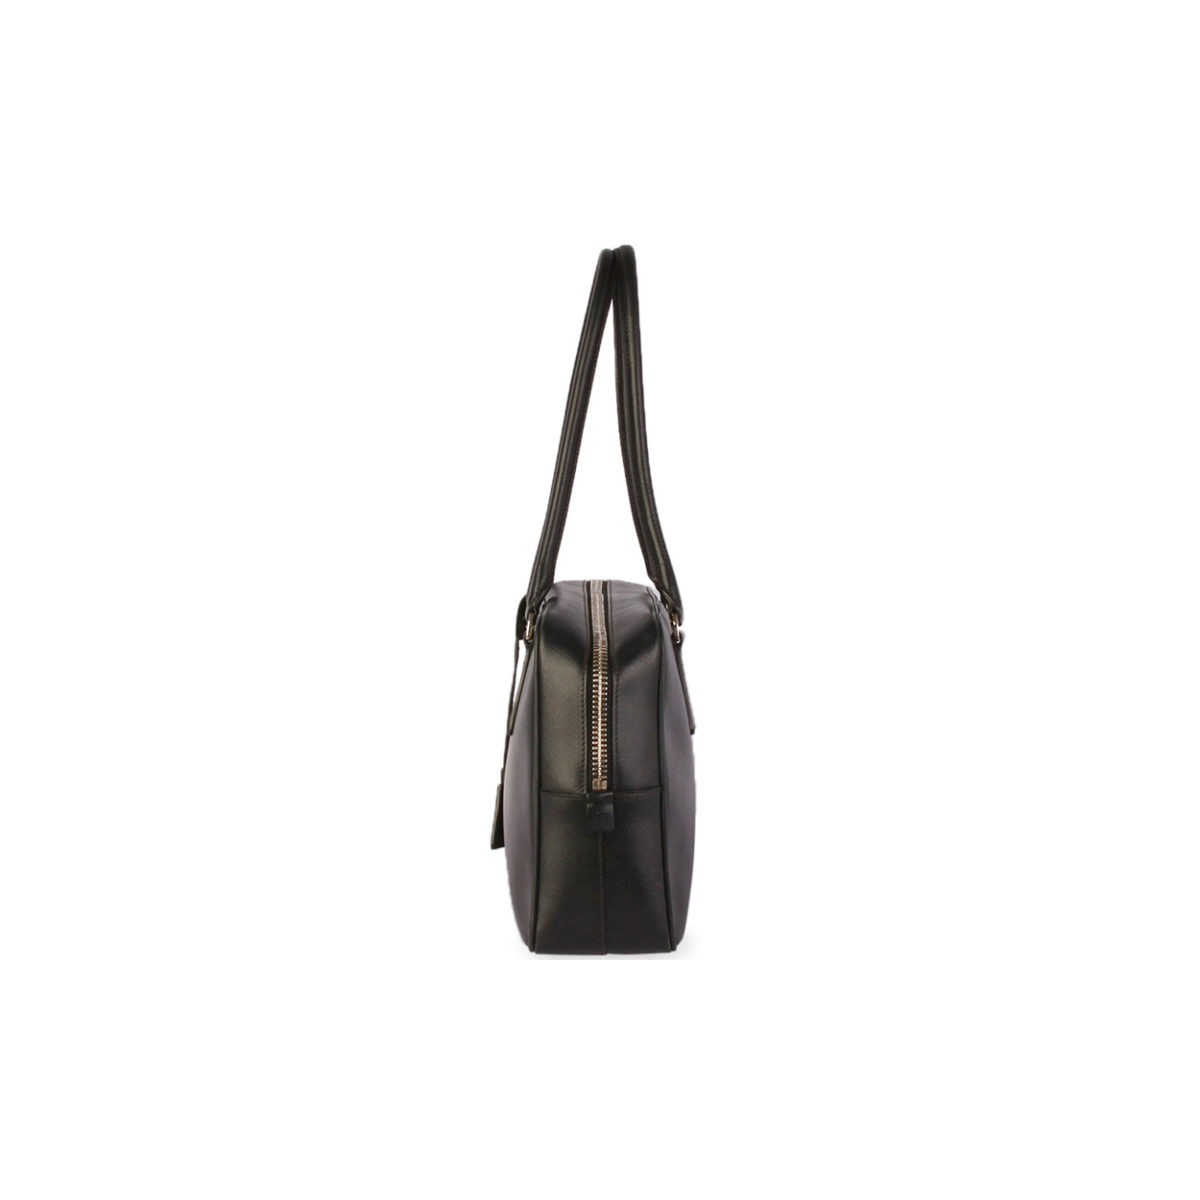 0134374771 PRADA Saffiano Lux Bauletto Bag Black